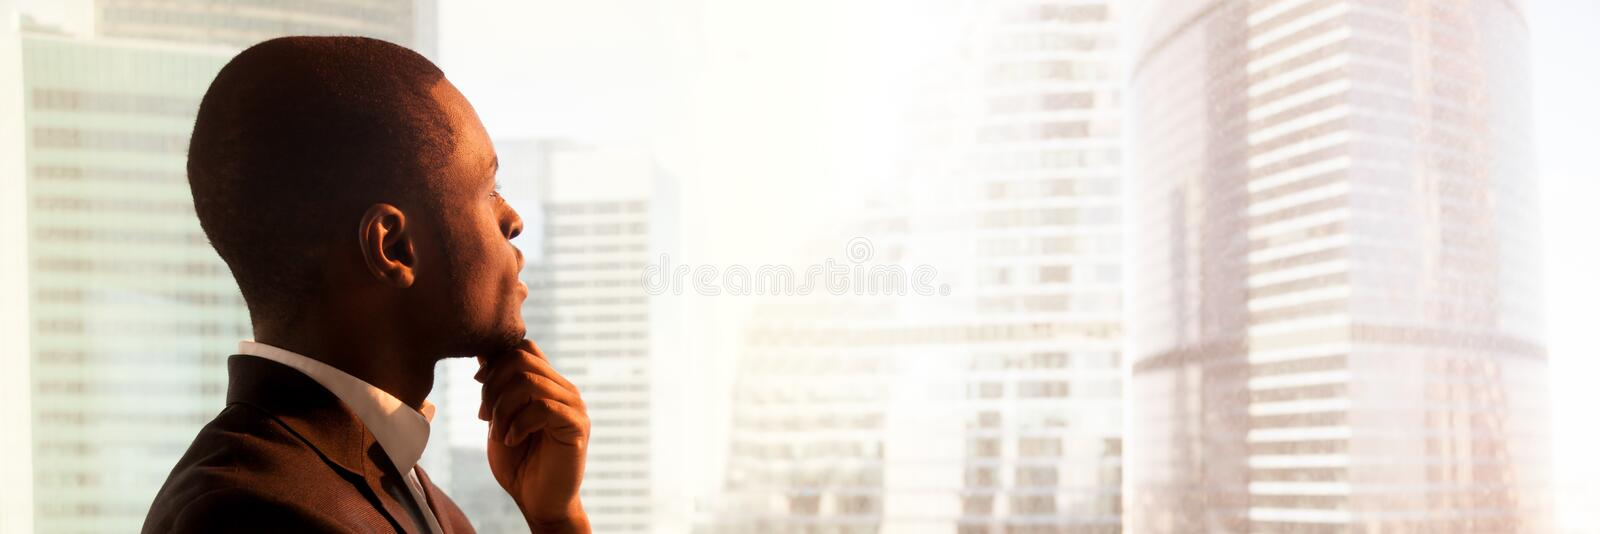 Close up side view black businessman standing near window thinking royalty free stock image